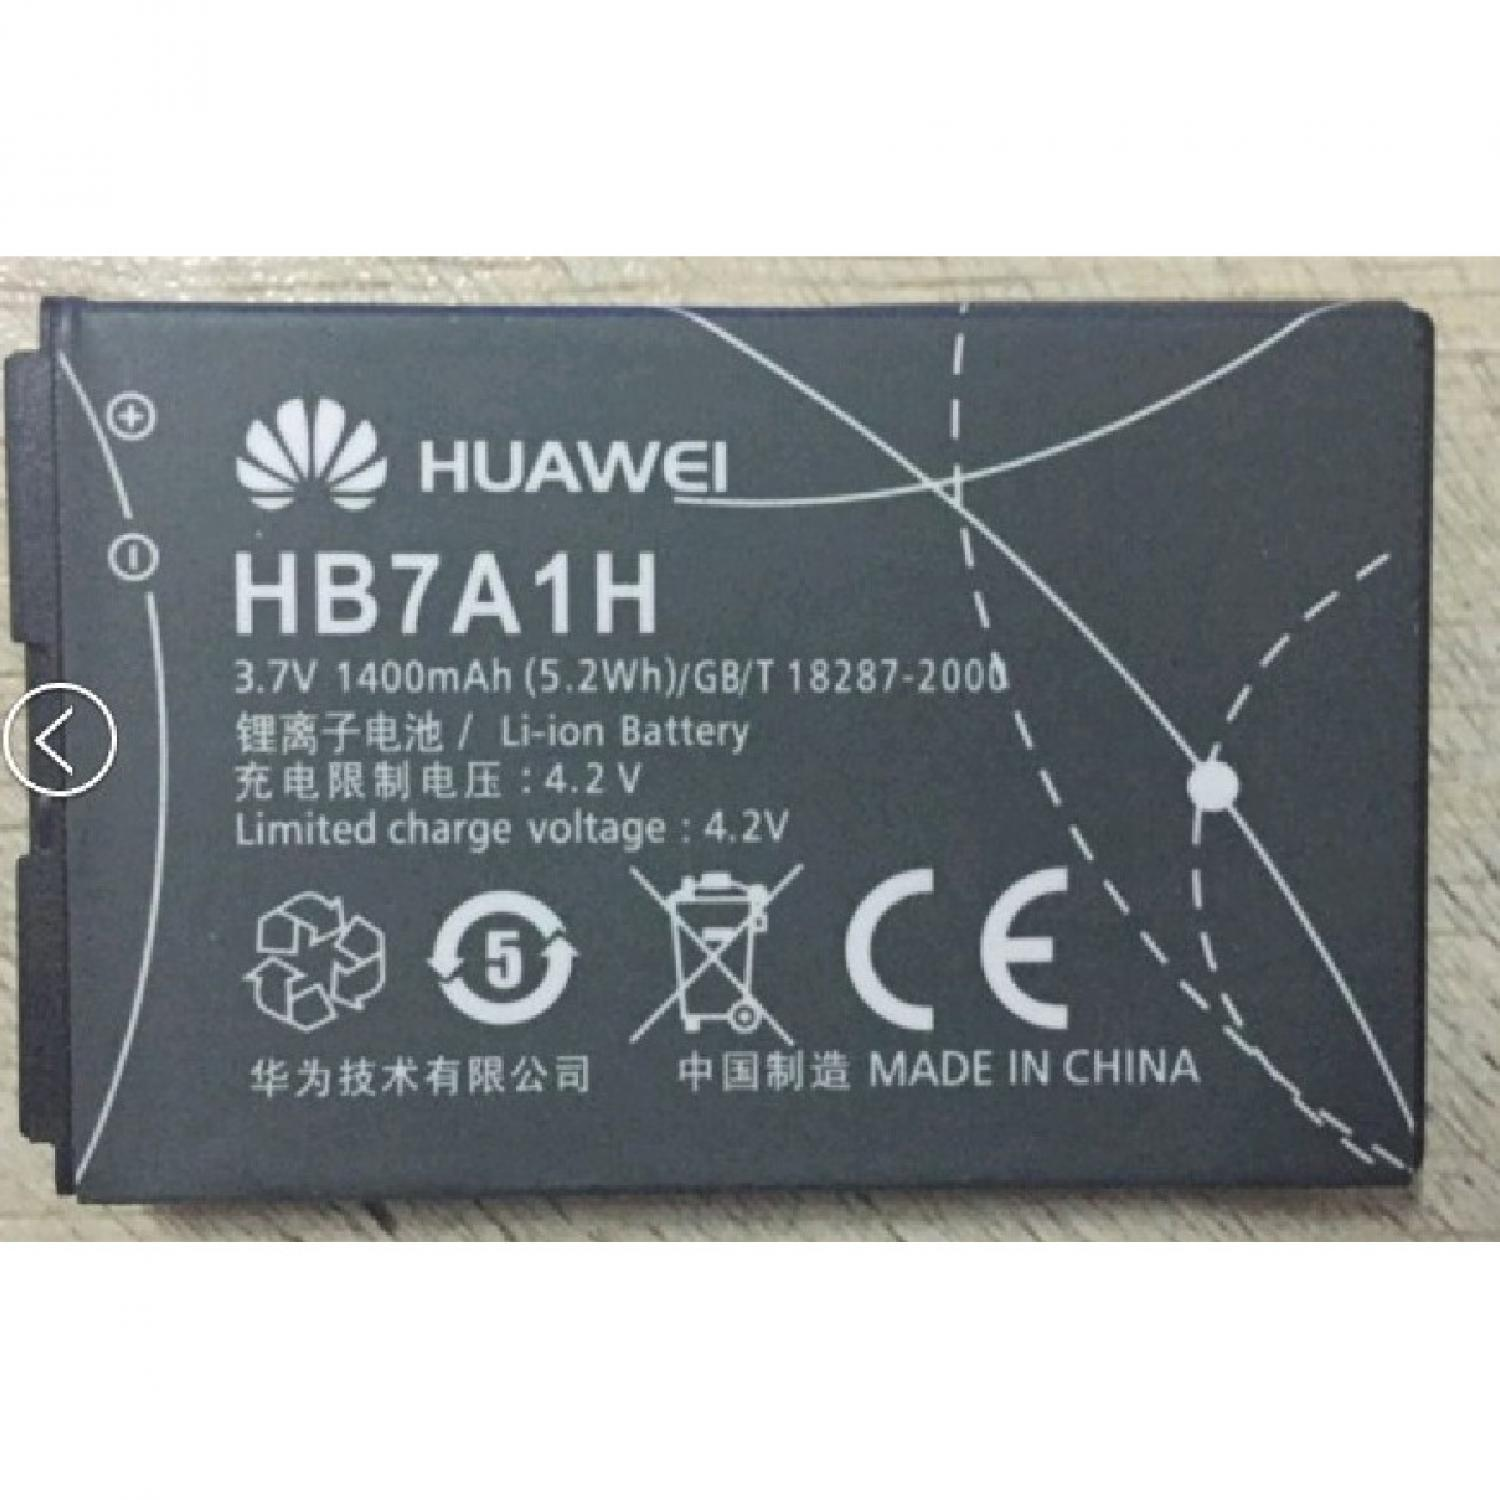 Baterai for Huawei Mobile Wireless Modem 1400 mAh - HB7A1H